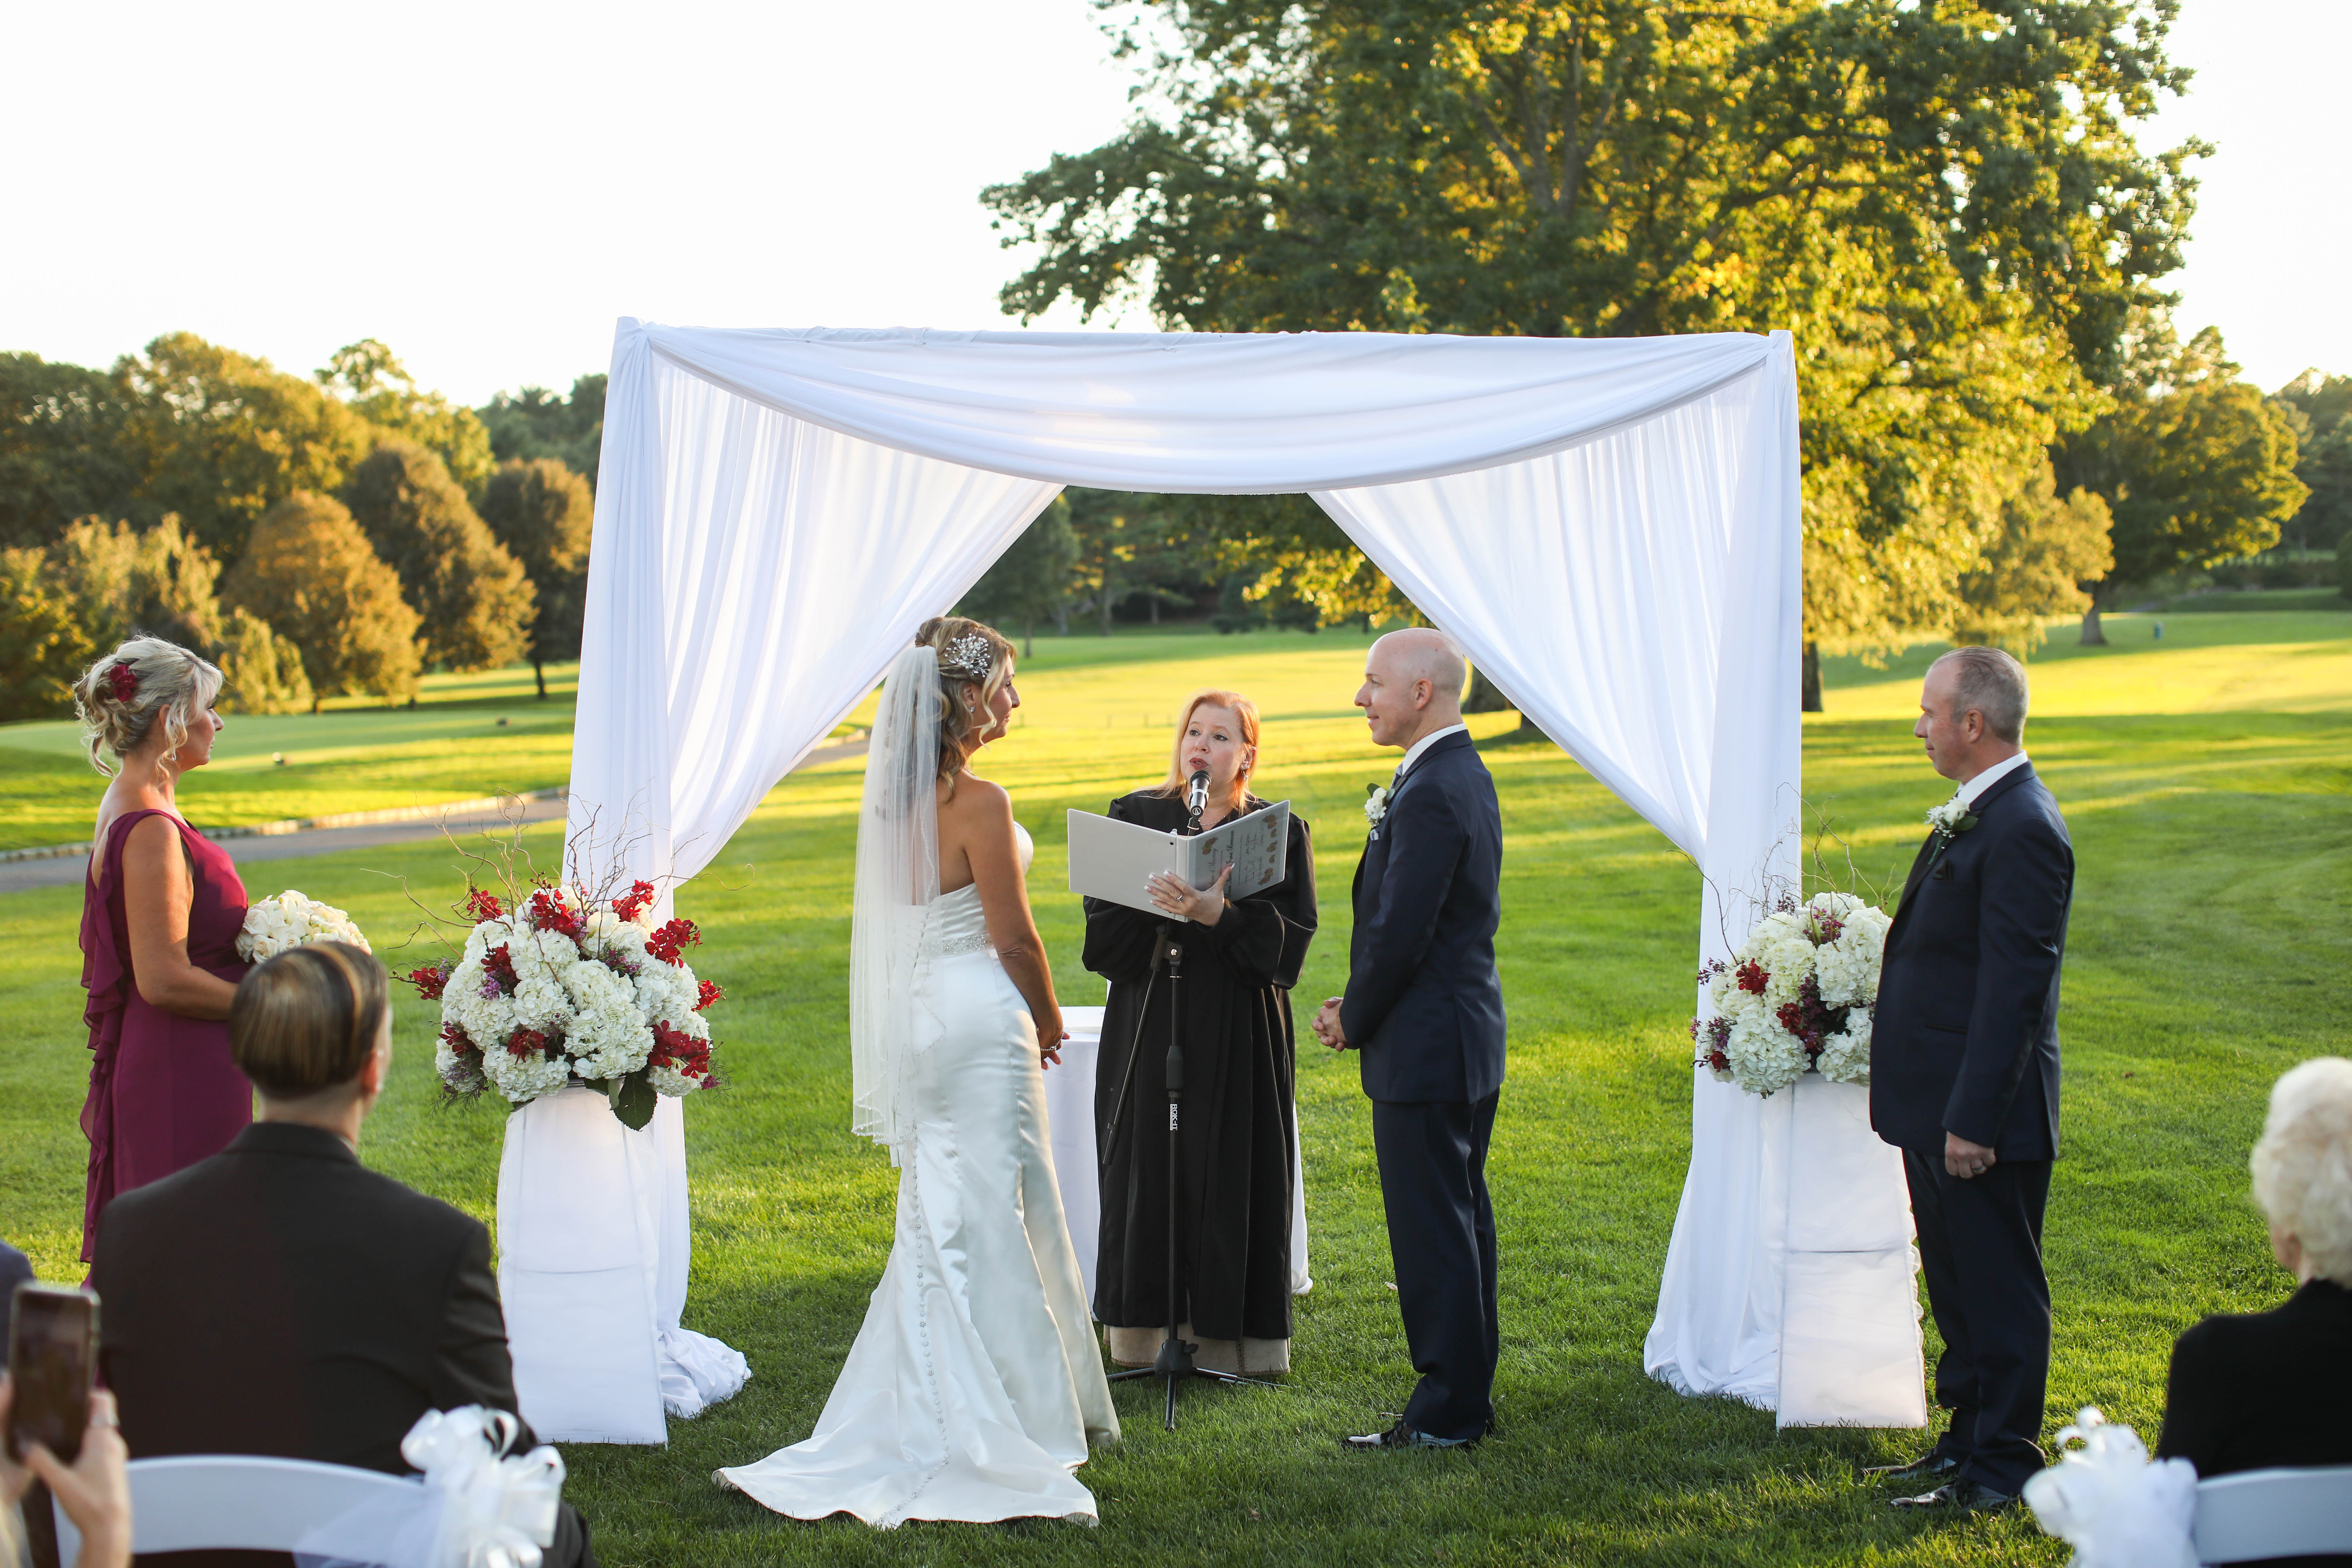 Intimate Outdoor Wedding - The Muttontown Club